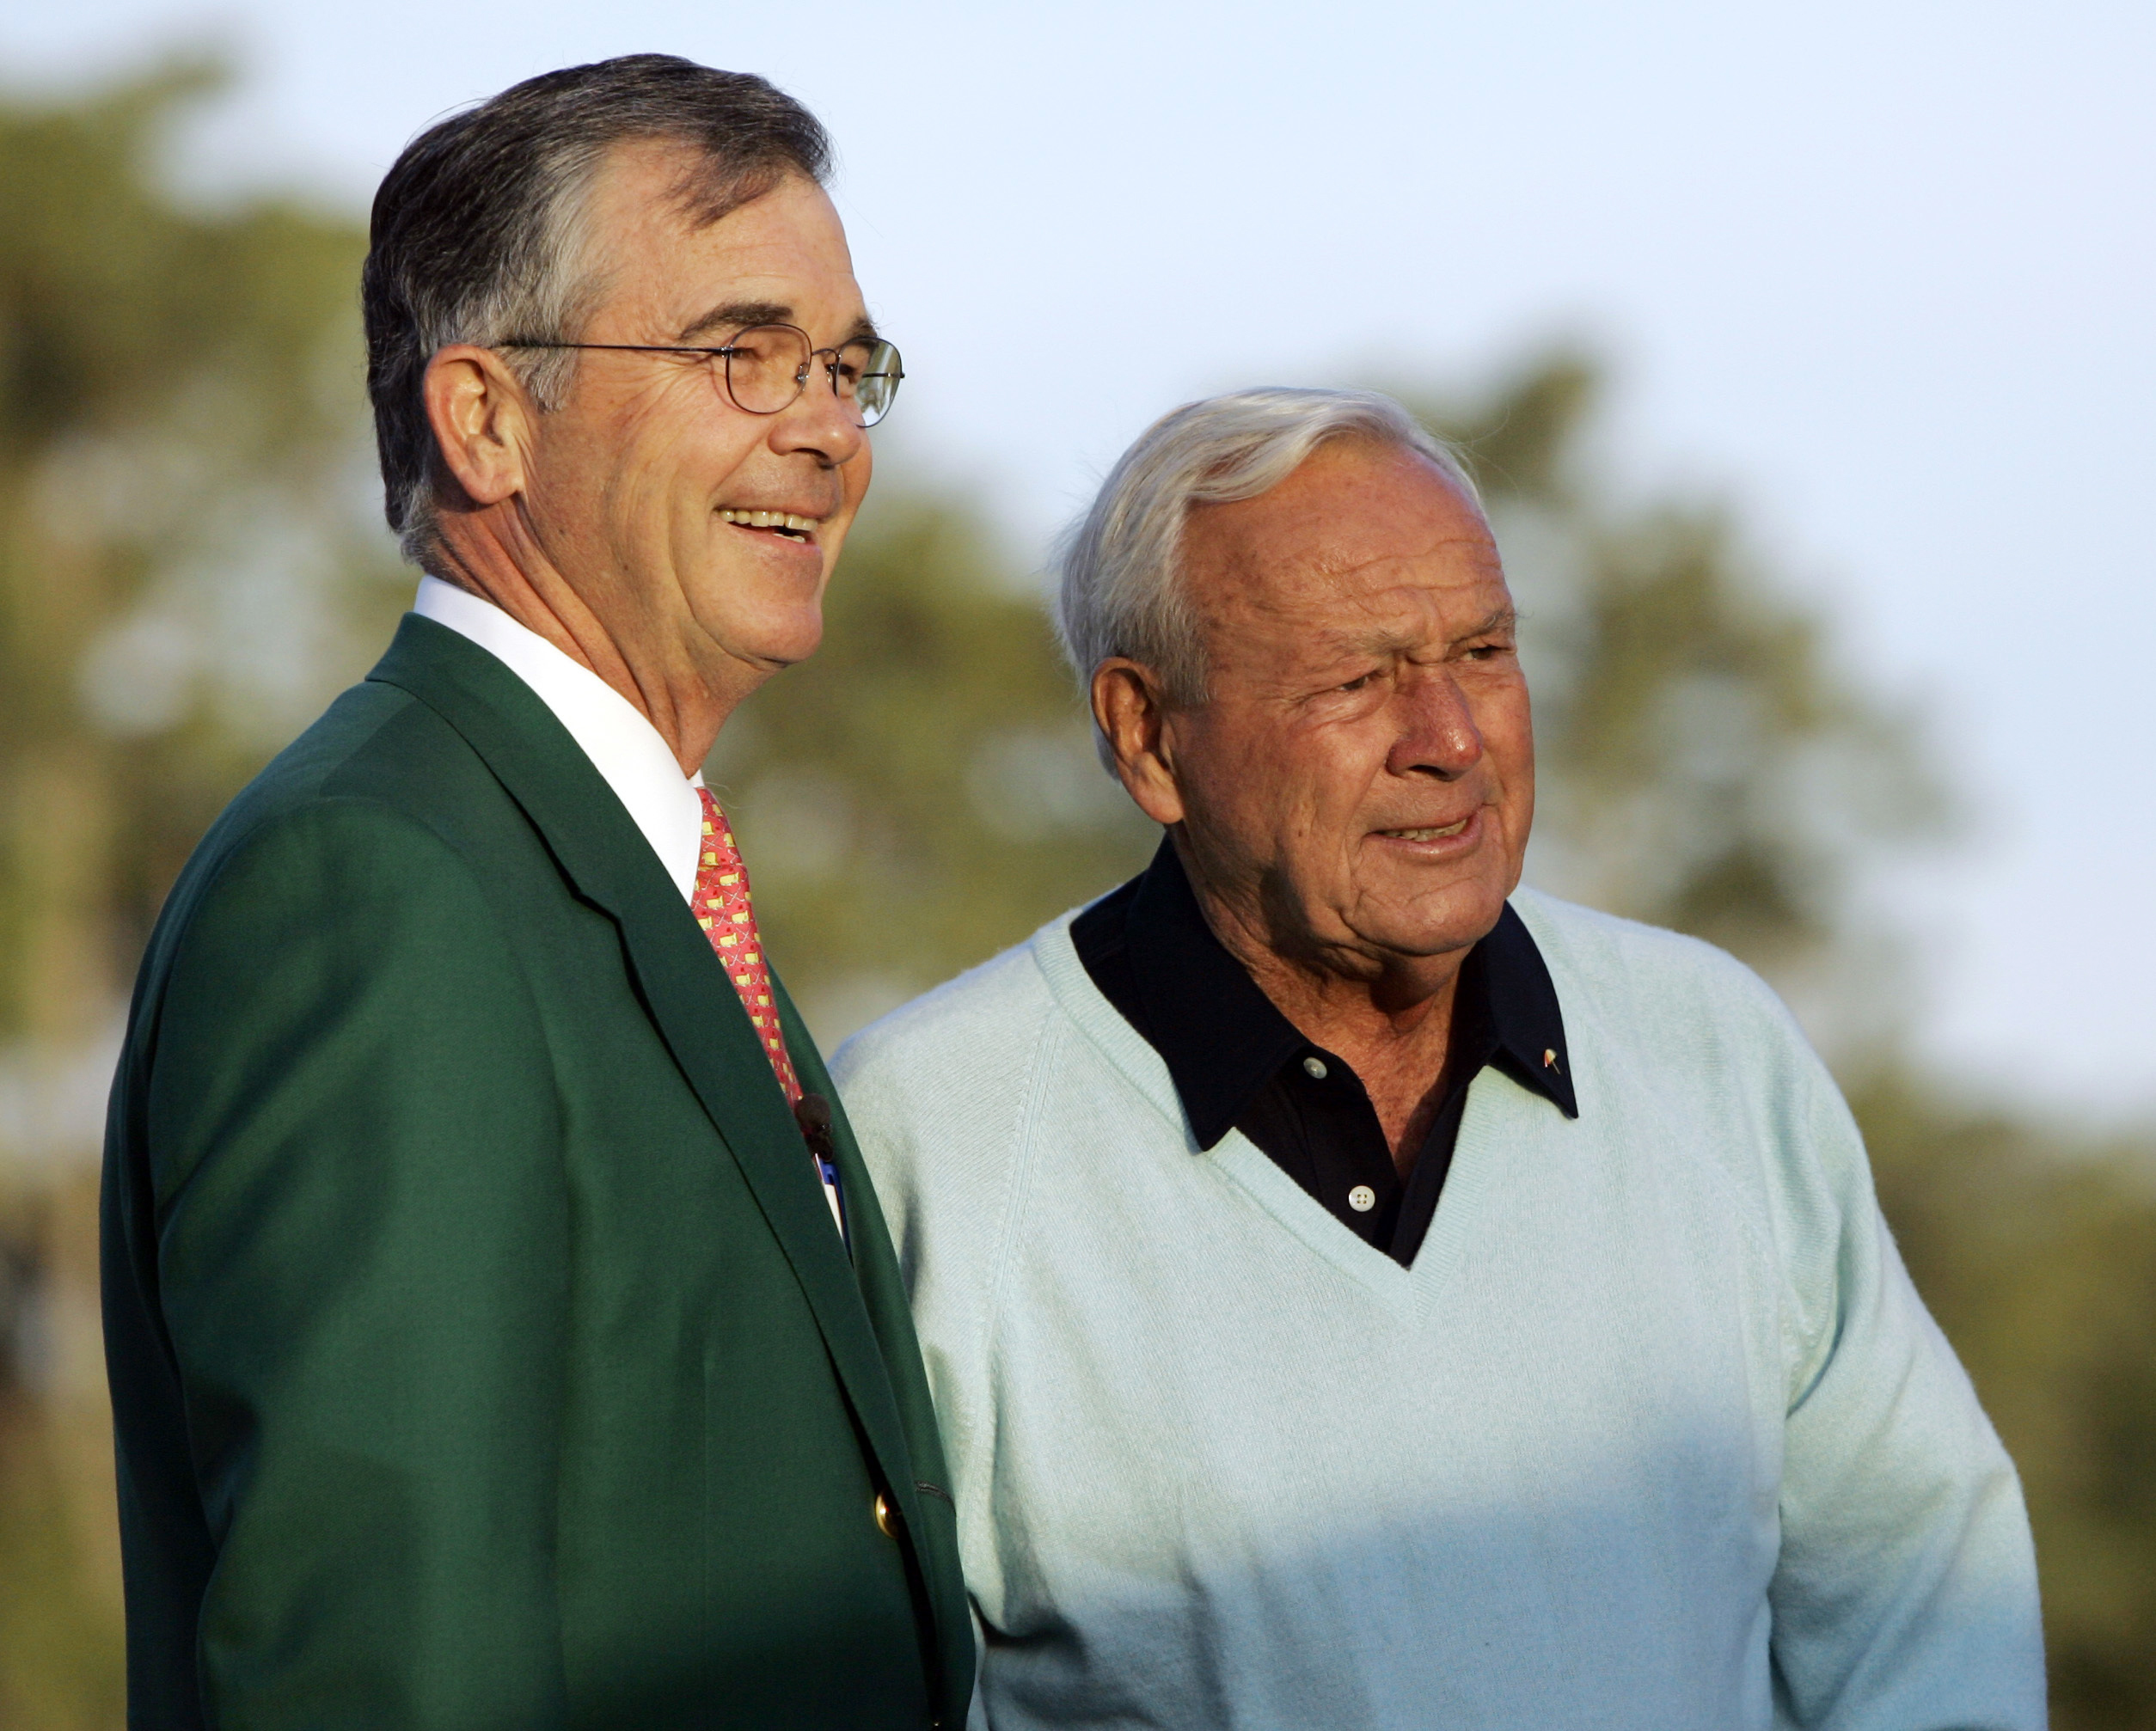 FILE - In this Thursday, April 5, 2007, file photo, Augusta National chairman Billy Payne, left, stands with honorary starter Arnold Palmer before the first round of the 2007 Masters golf tournament at the Augusta National Golf Club in Augusta, Ga. Payne